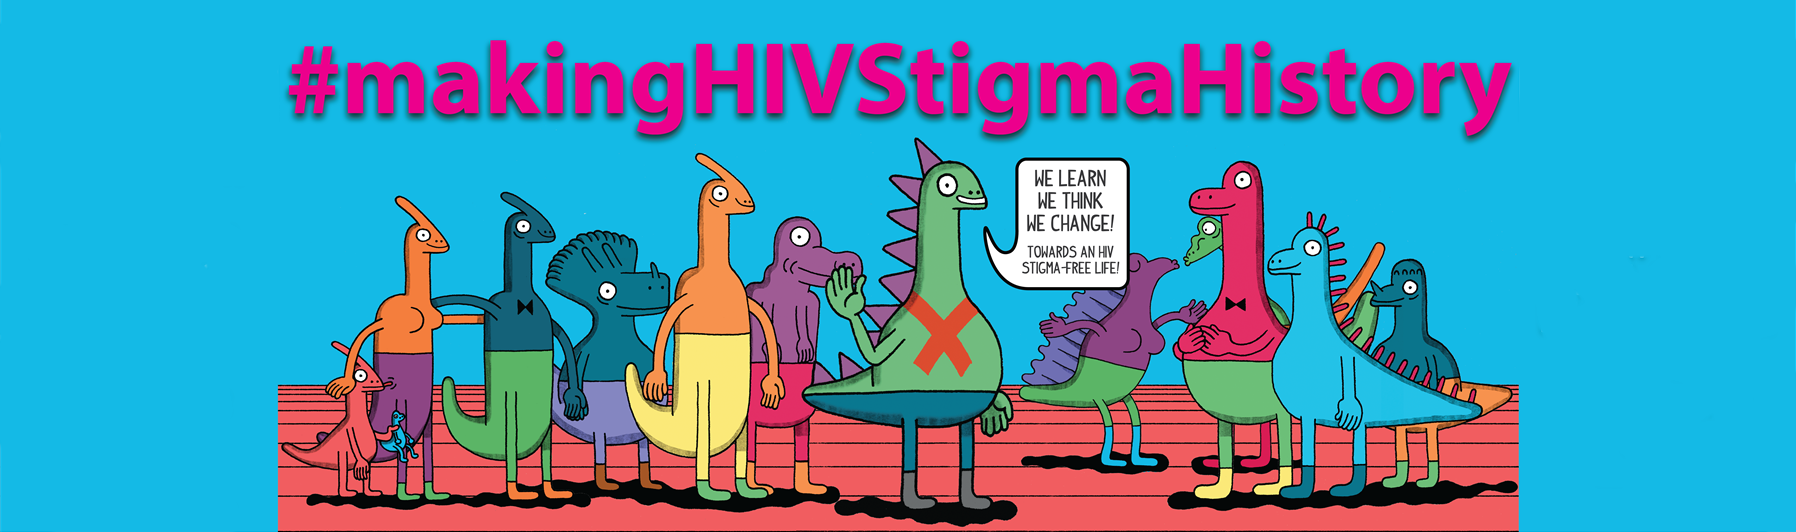 Making HIV Stigma History edit 2